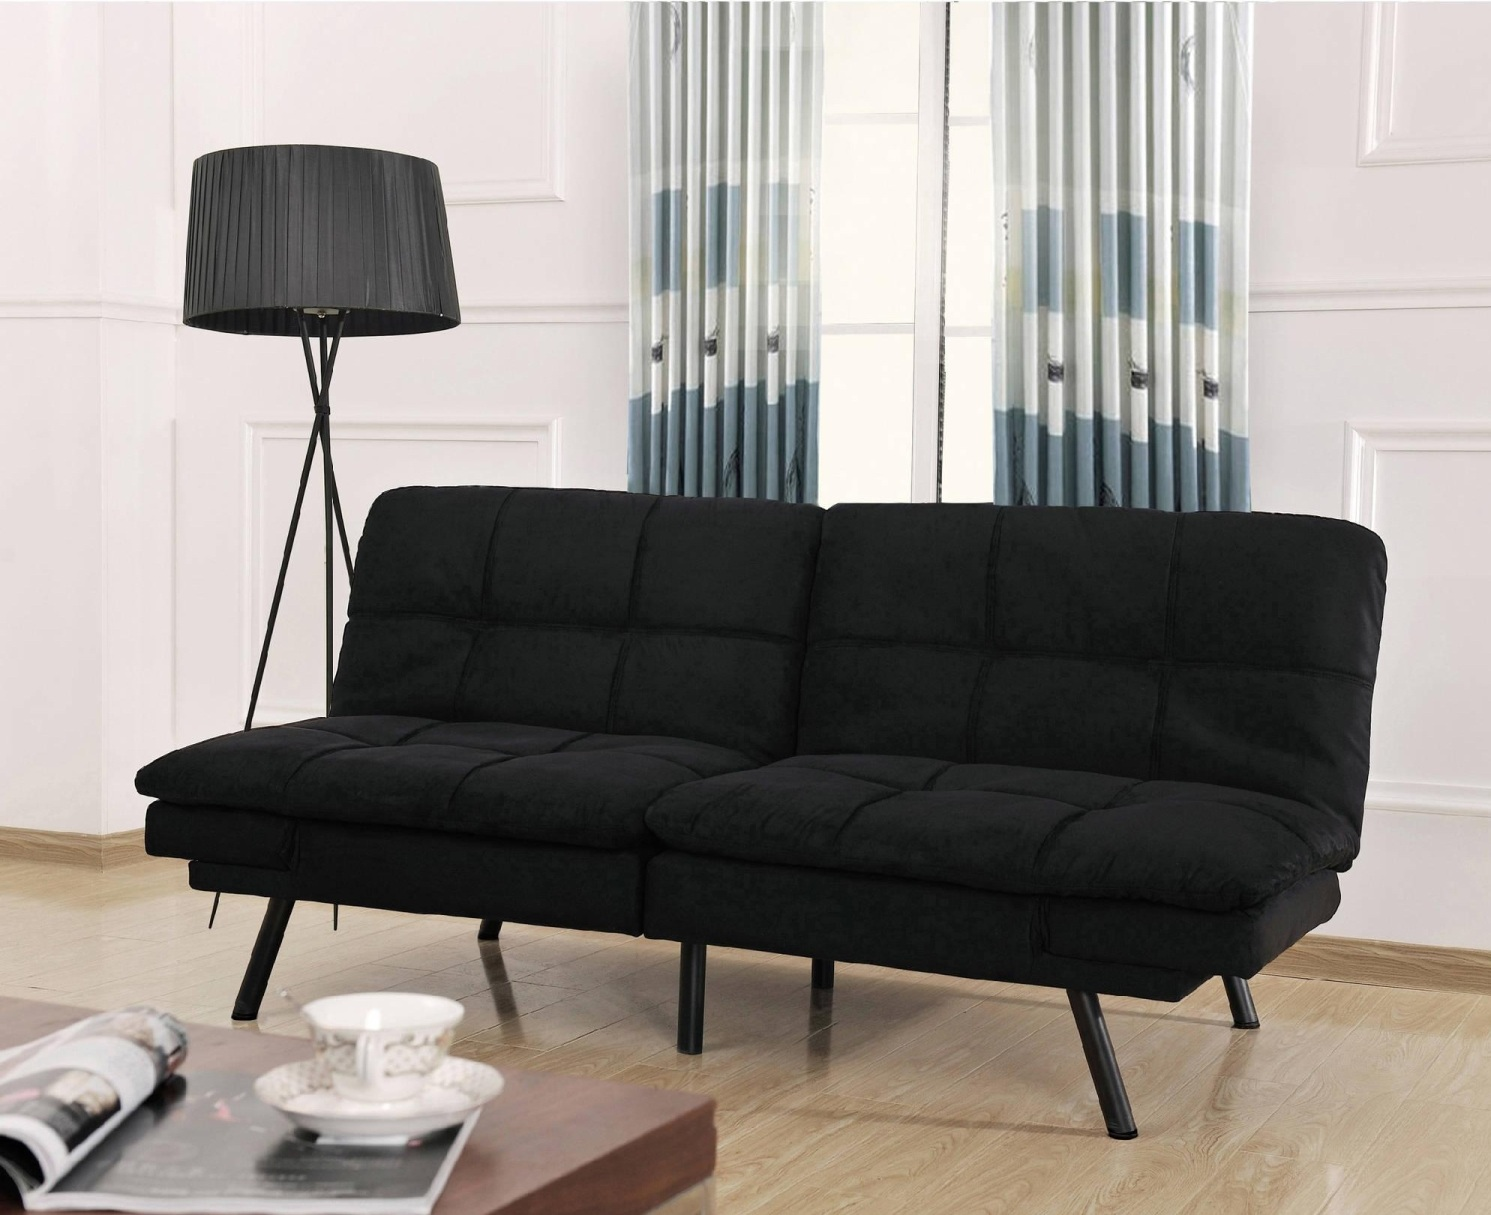 2016 Narrow Sofa Beds For The Best Use Of Tight Space 16